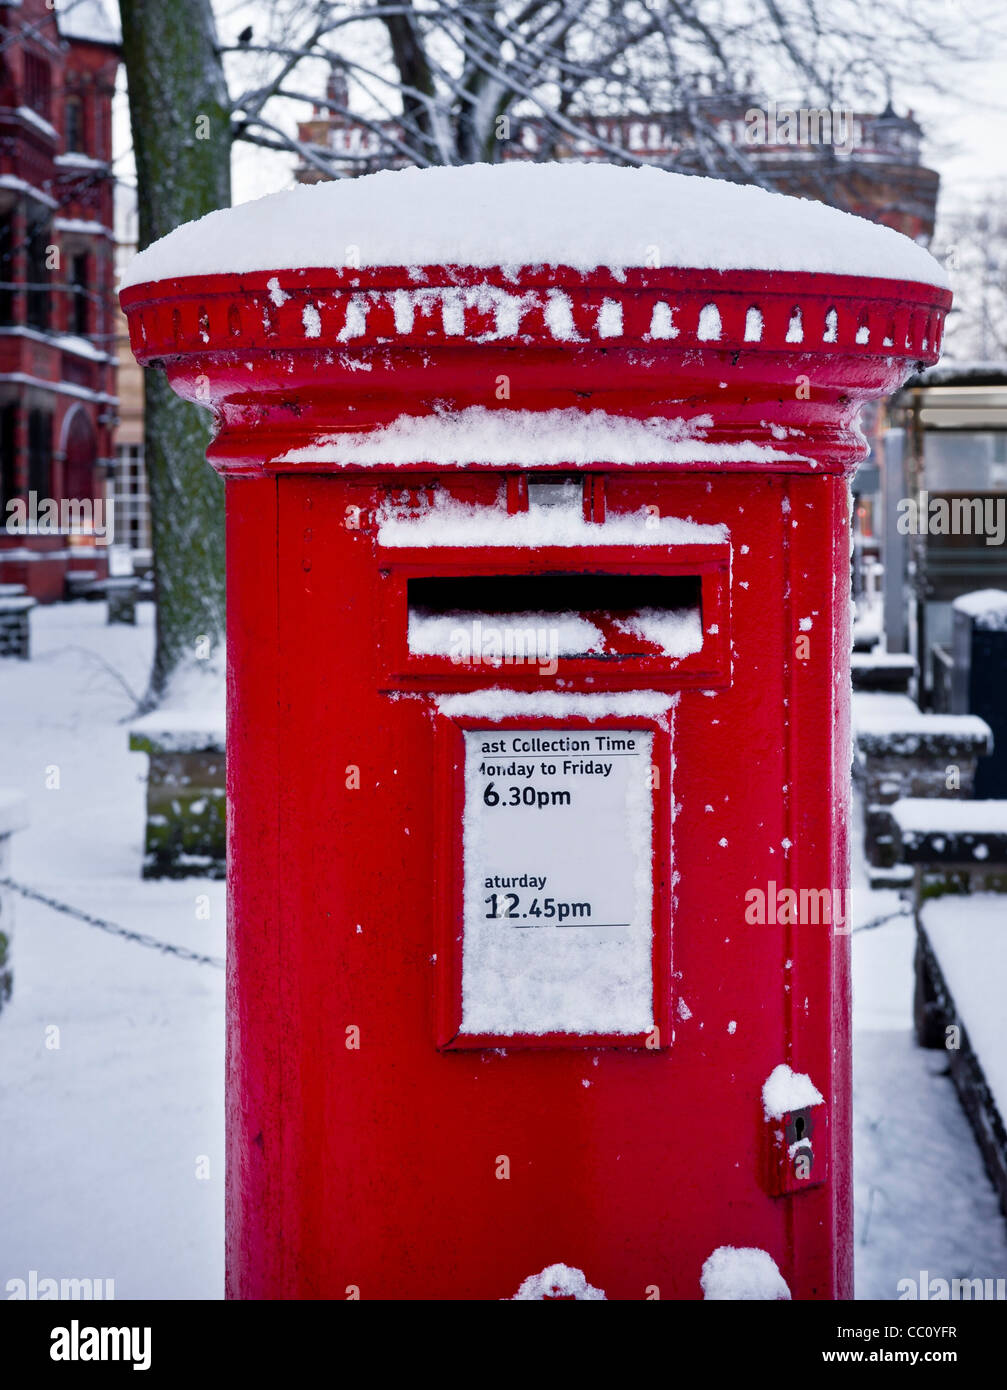 Red postbox in snow, York - Stock Image